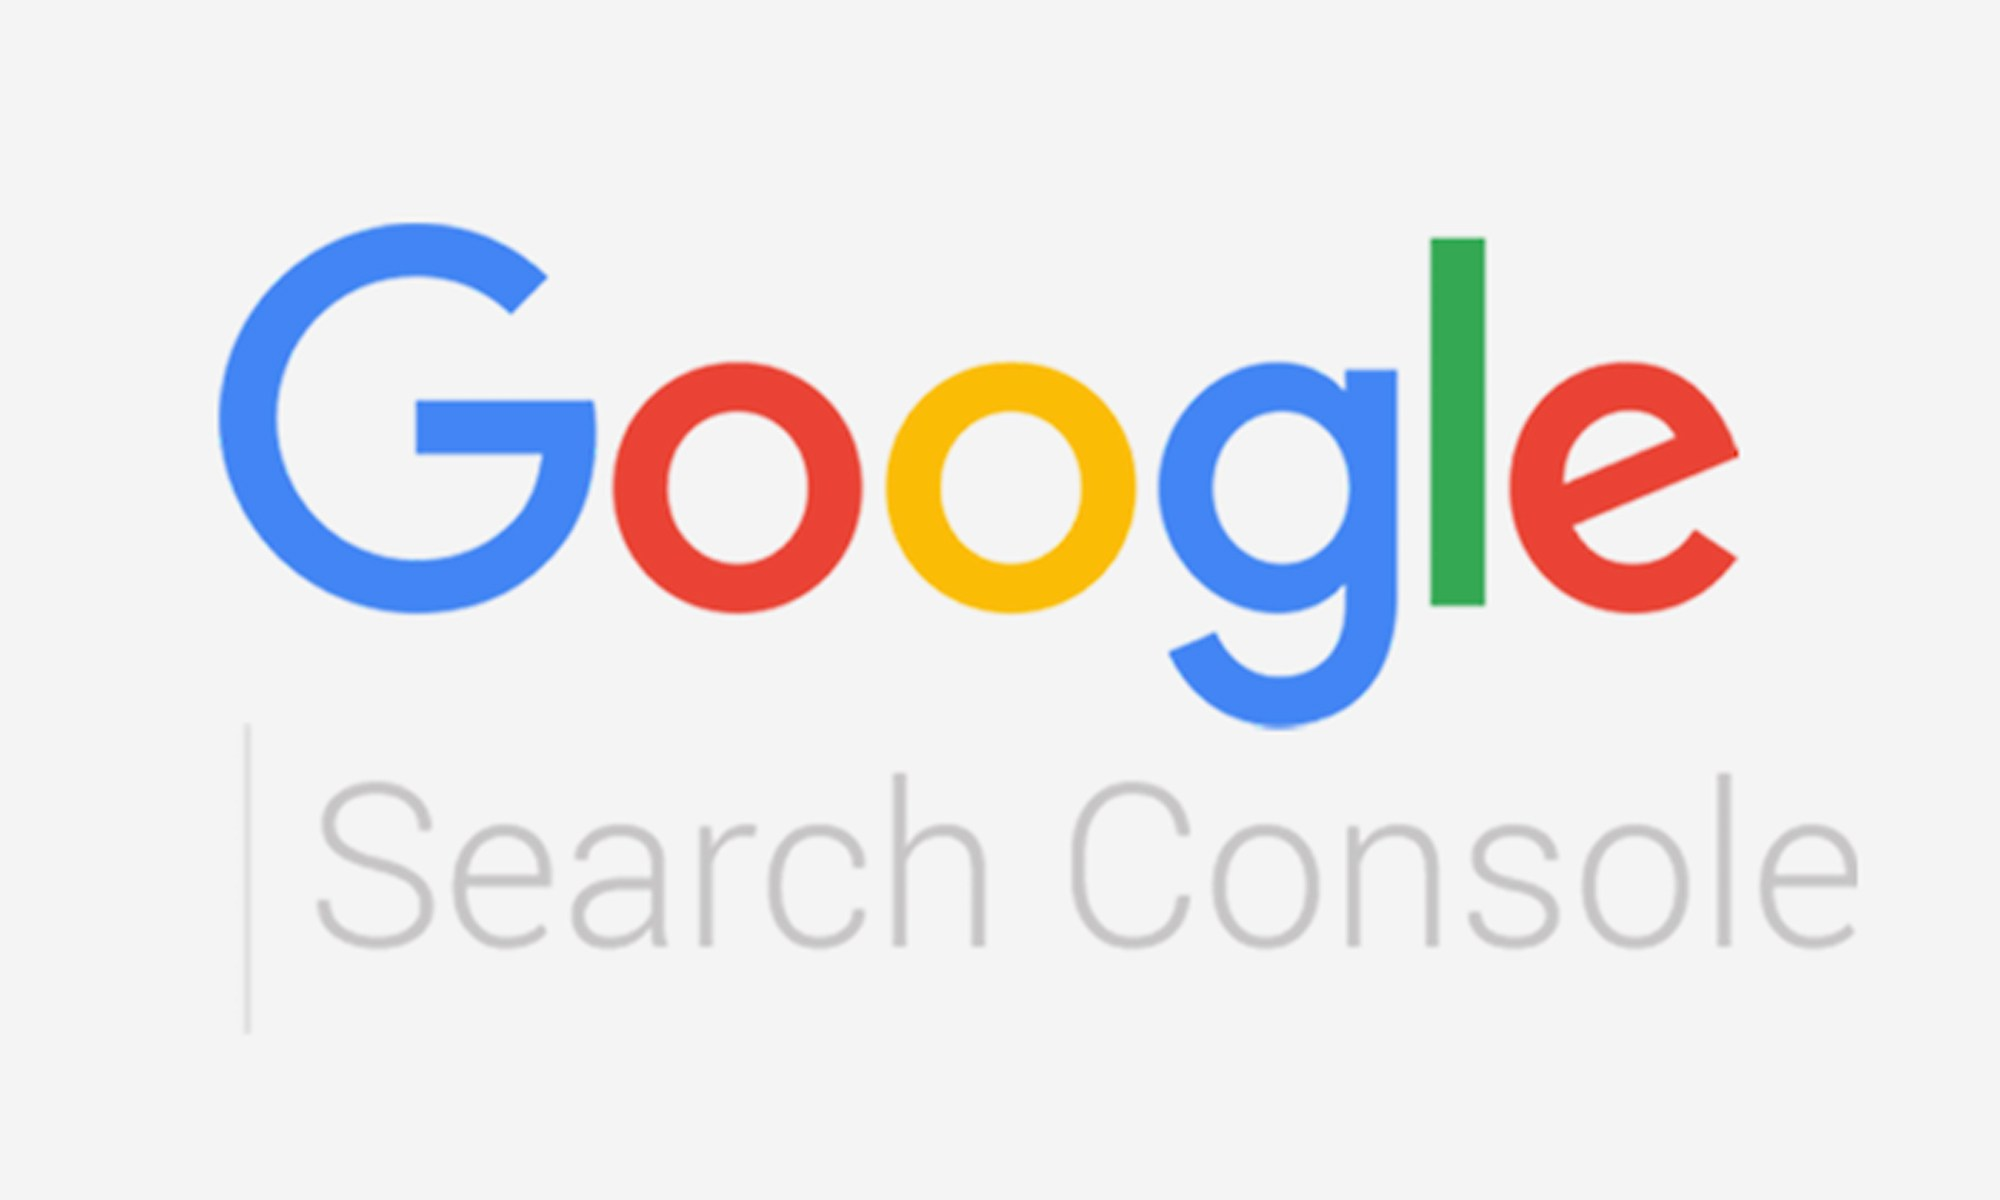 google search console - rio bermano